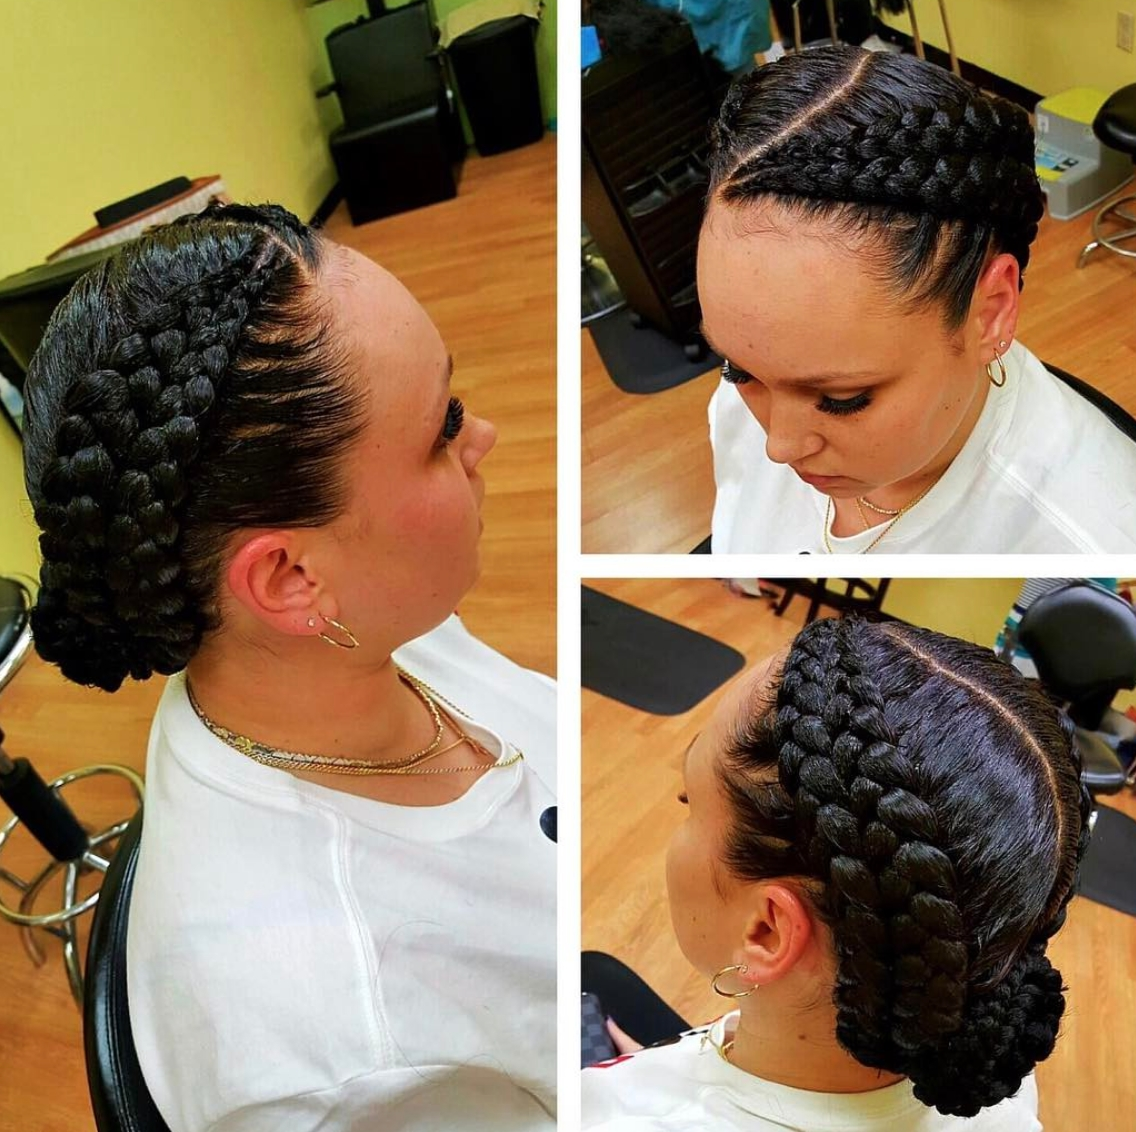 Well Liked Double Braided Hairstyles Intended For Pinblack Hair Information – Coils Media Ltd On Braids And Twists (View 7 of 20)